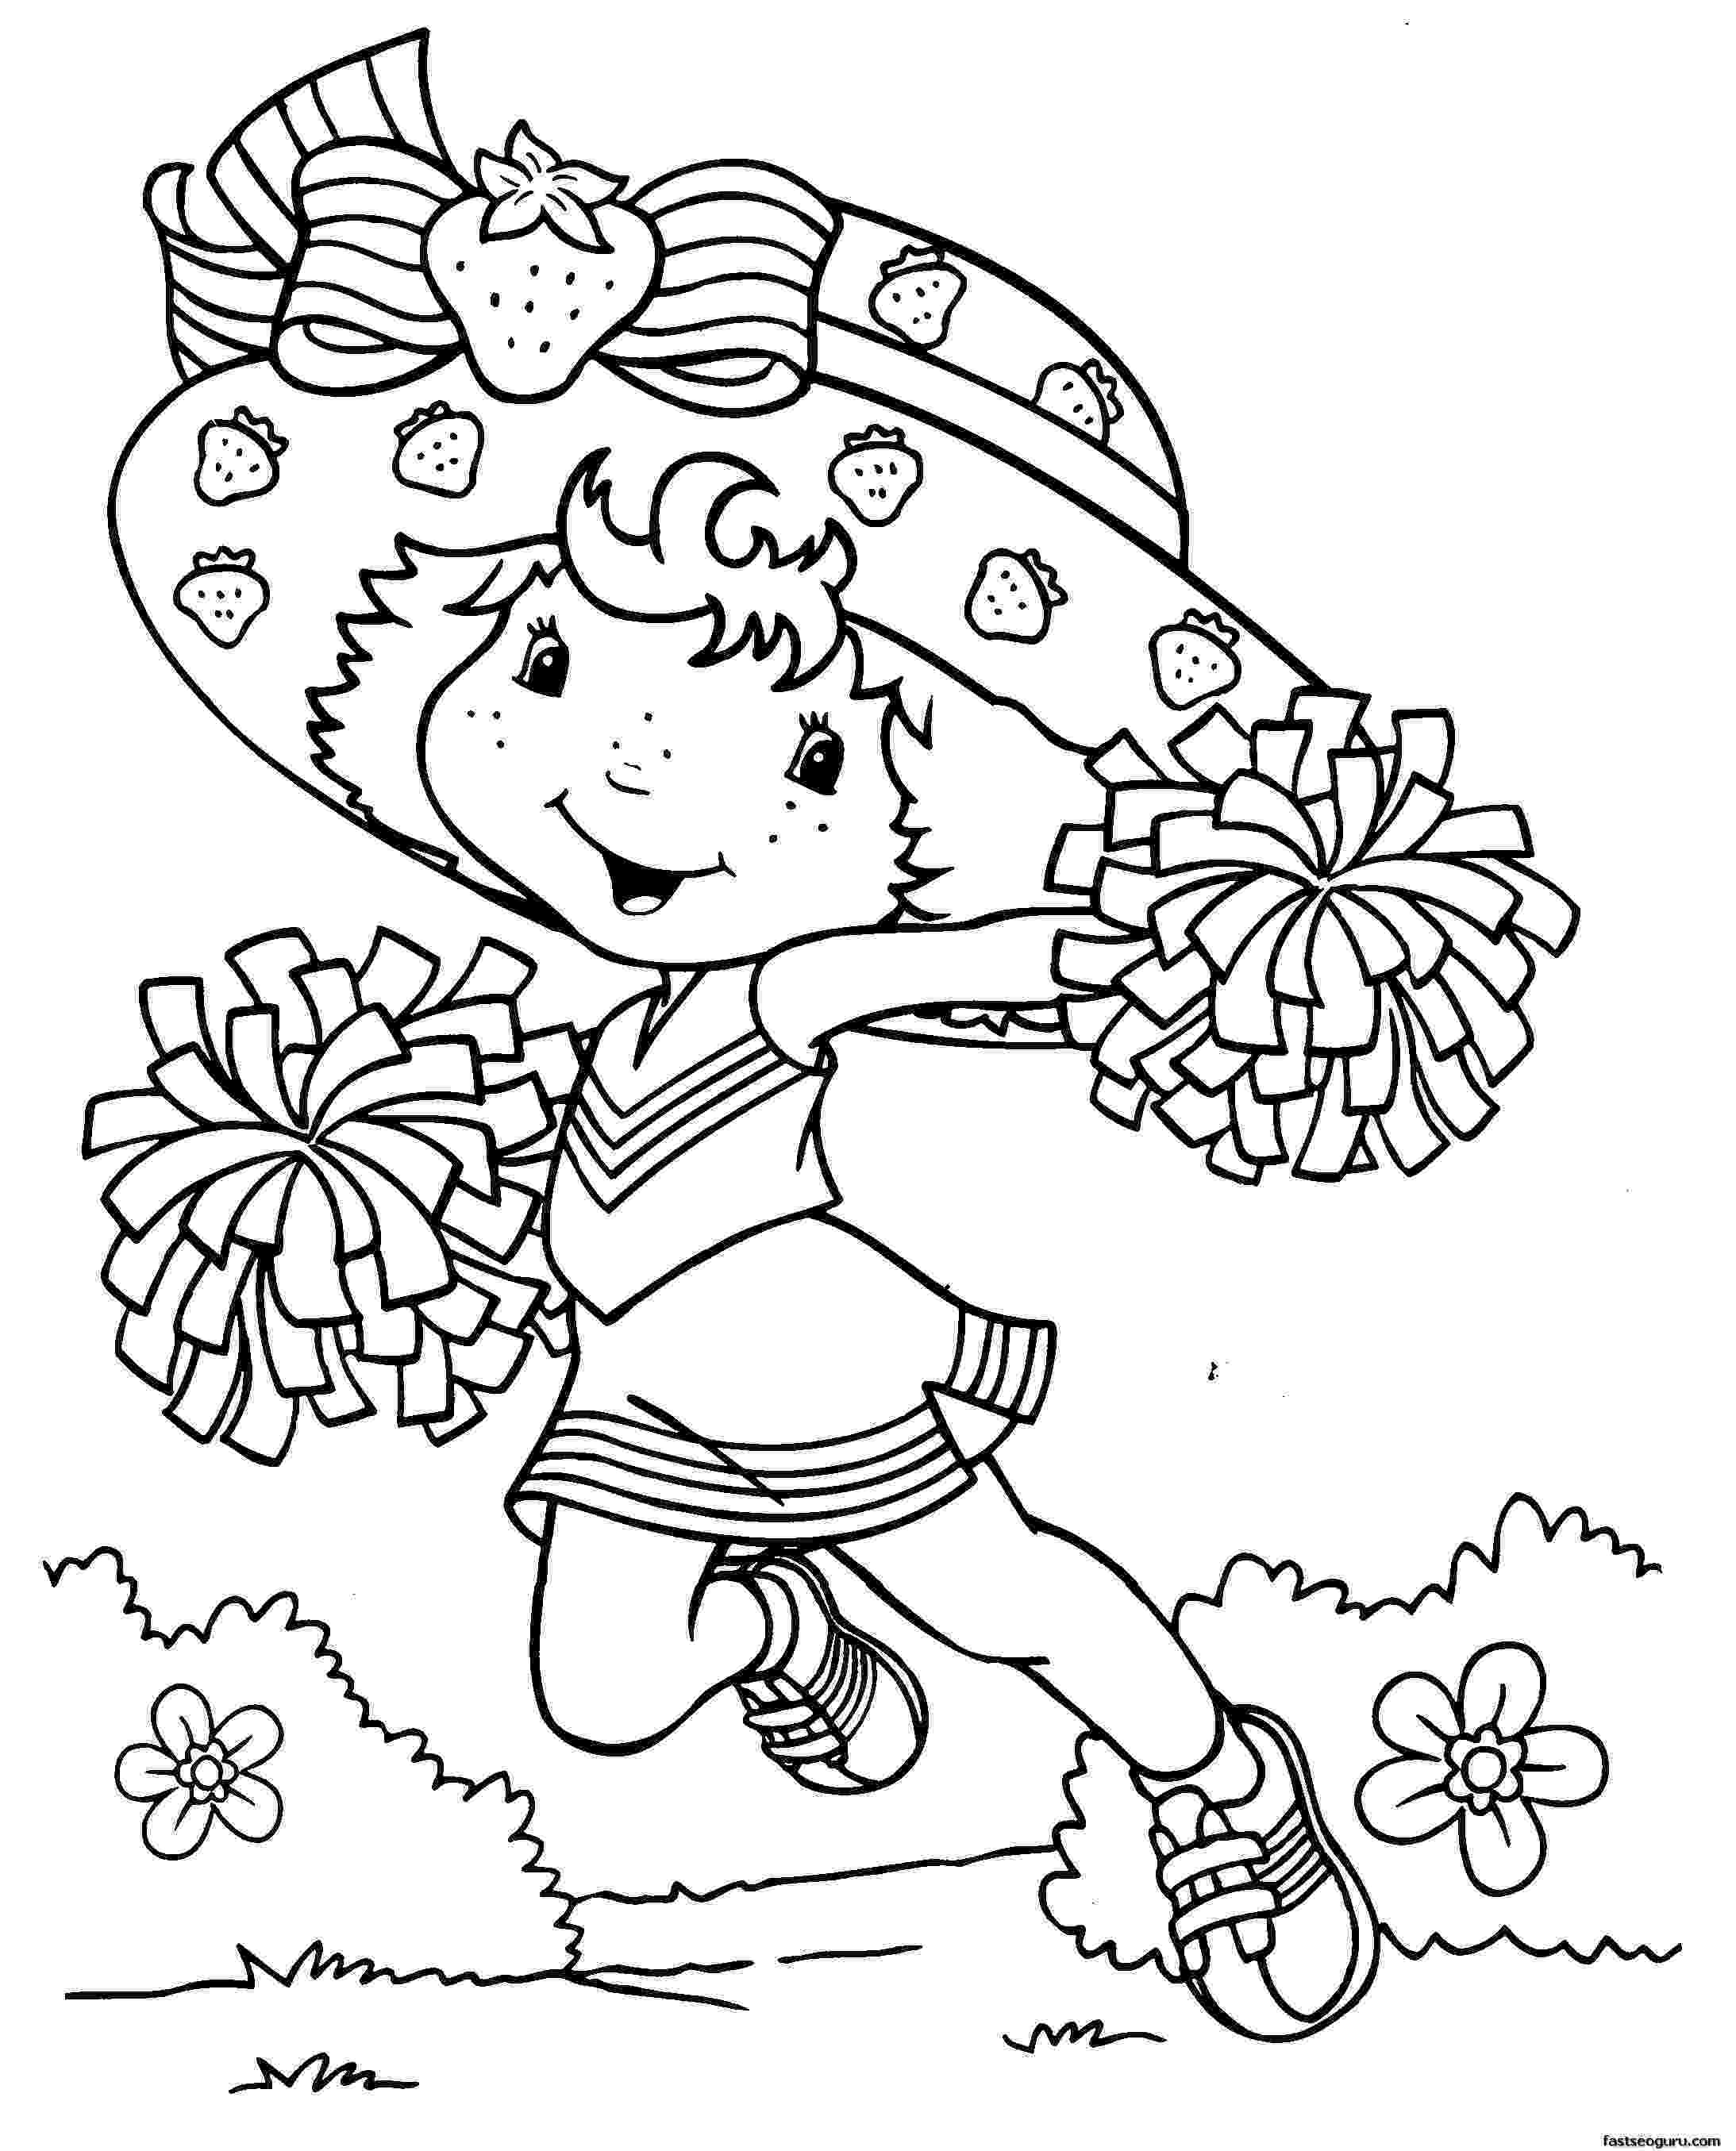 colering pages for girls anime coloring pages best coloring pages for kids girls pages for colering